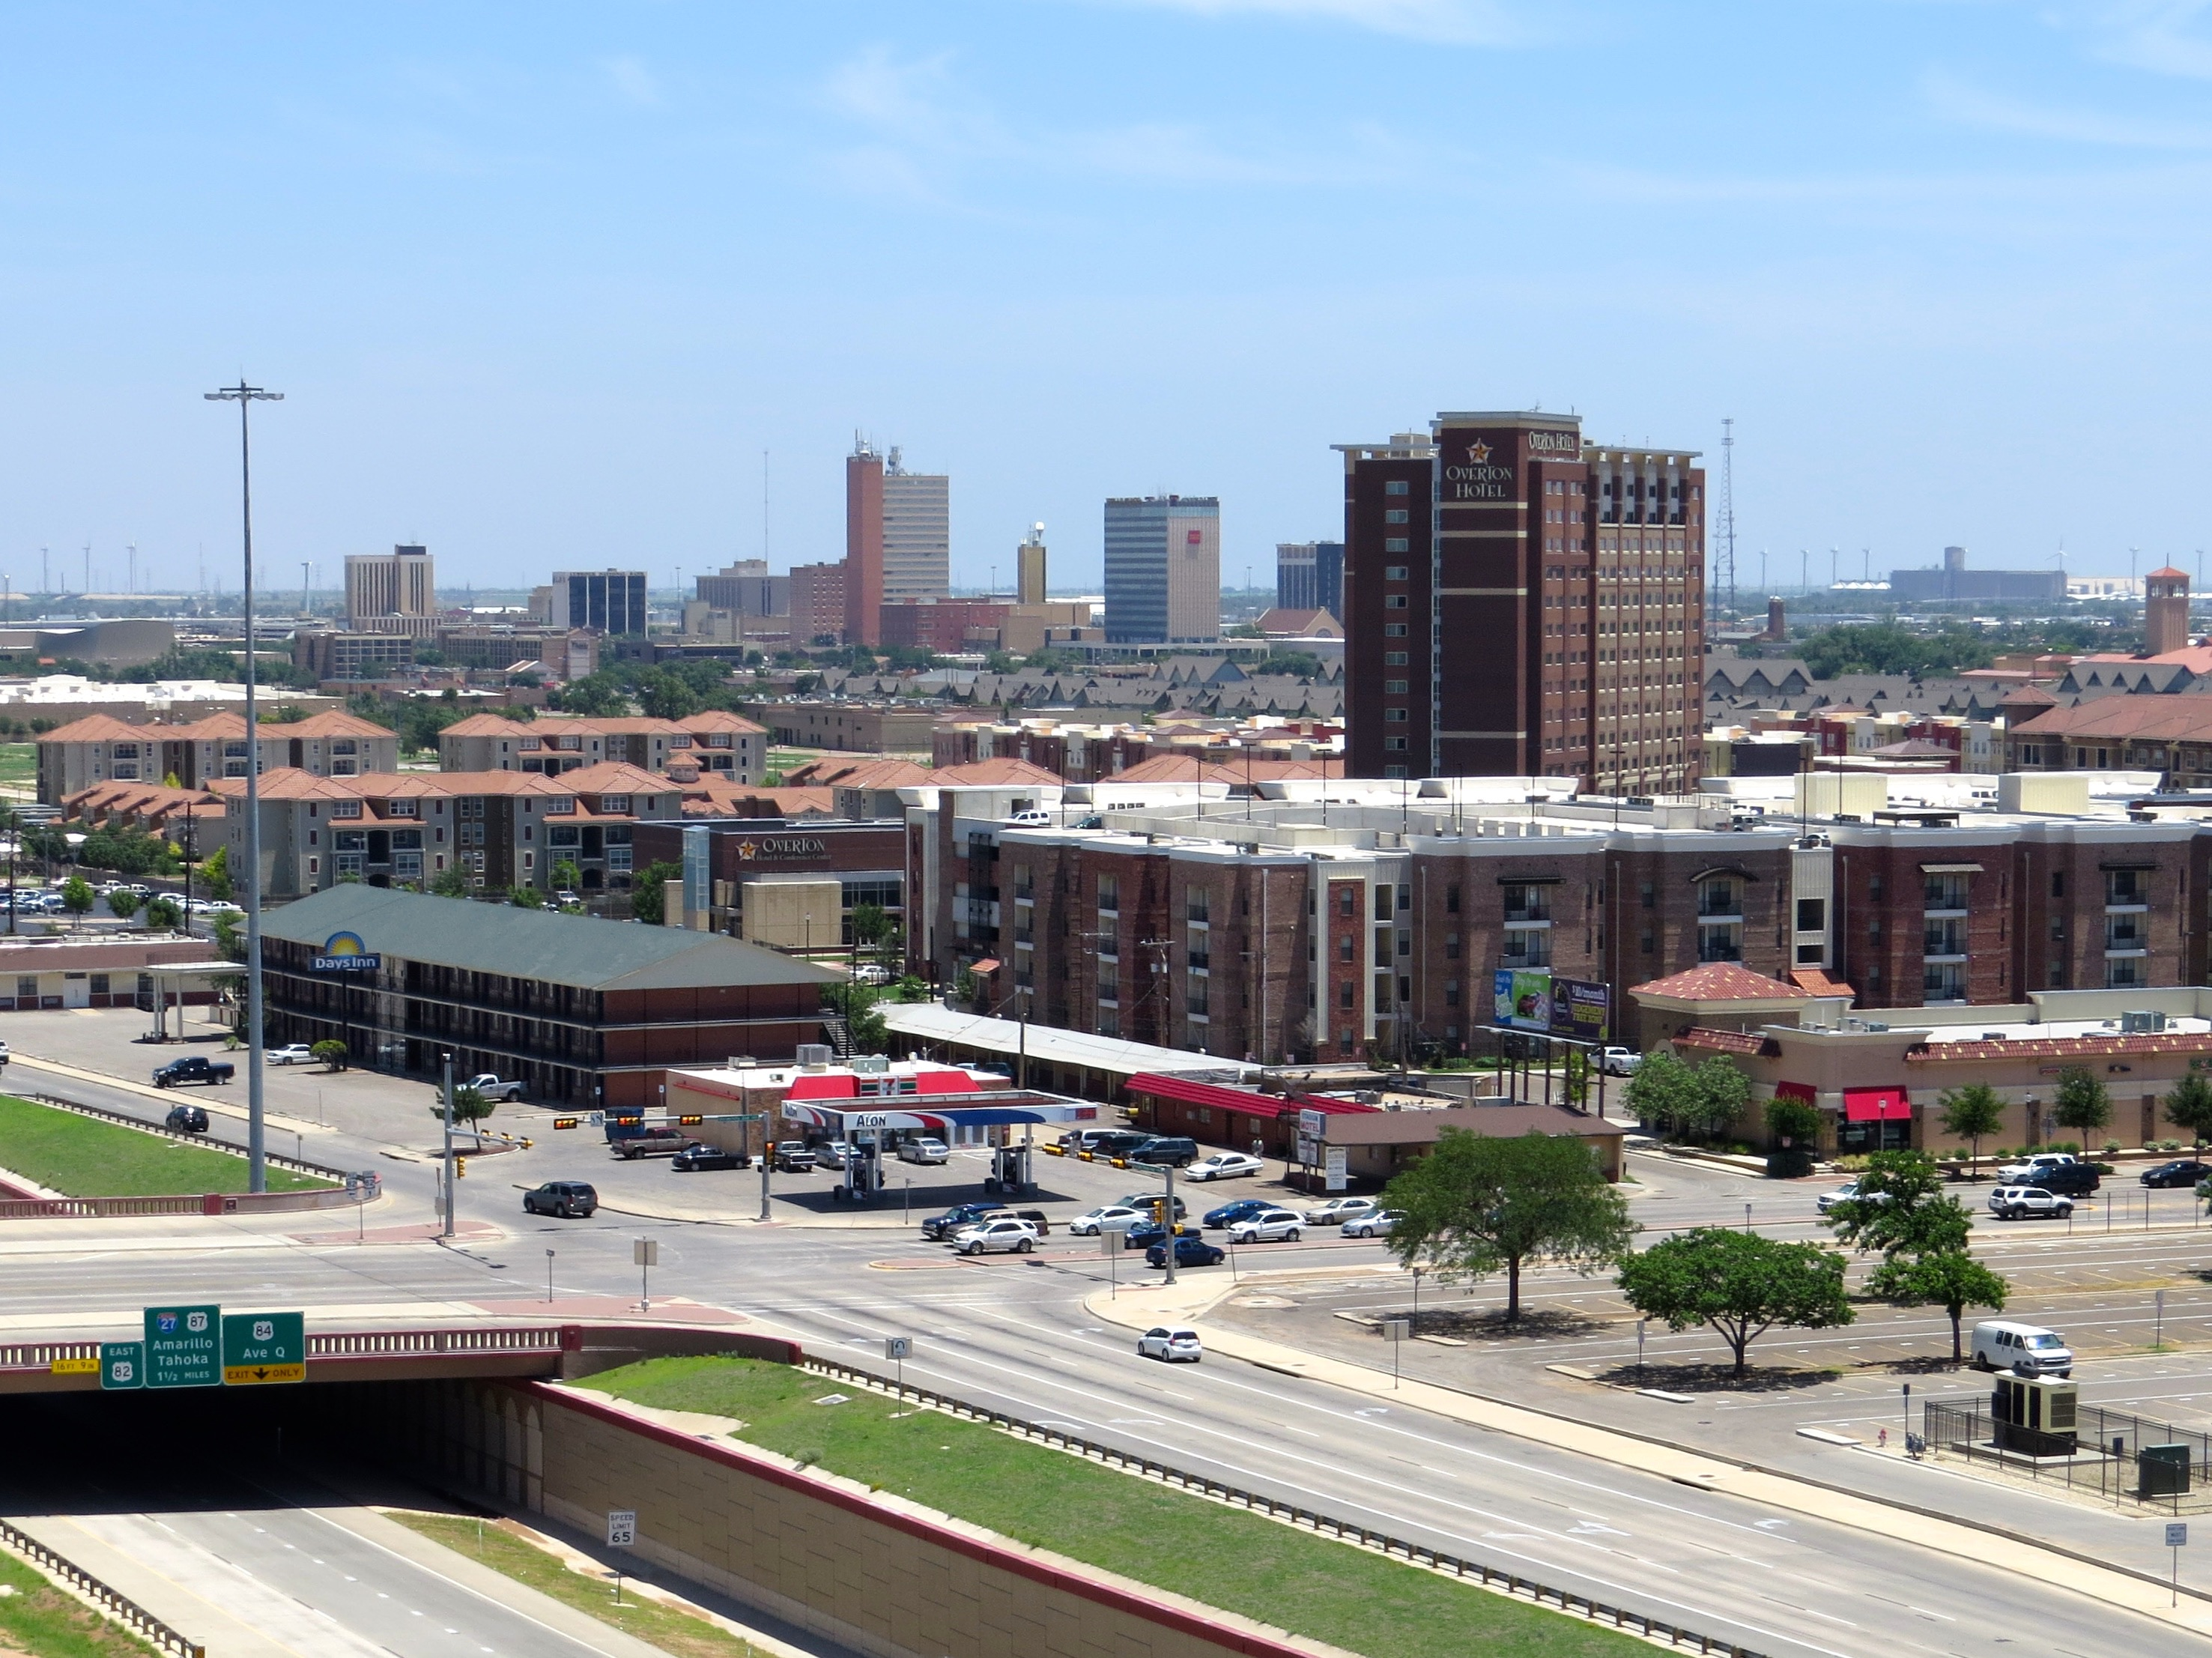 Certified nurse assistant cna salary in lubbock texas about lubbock texas xflitez Choice Image